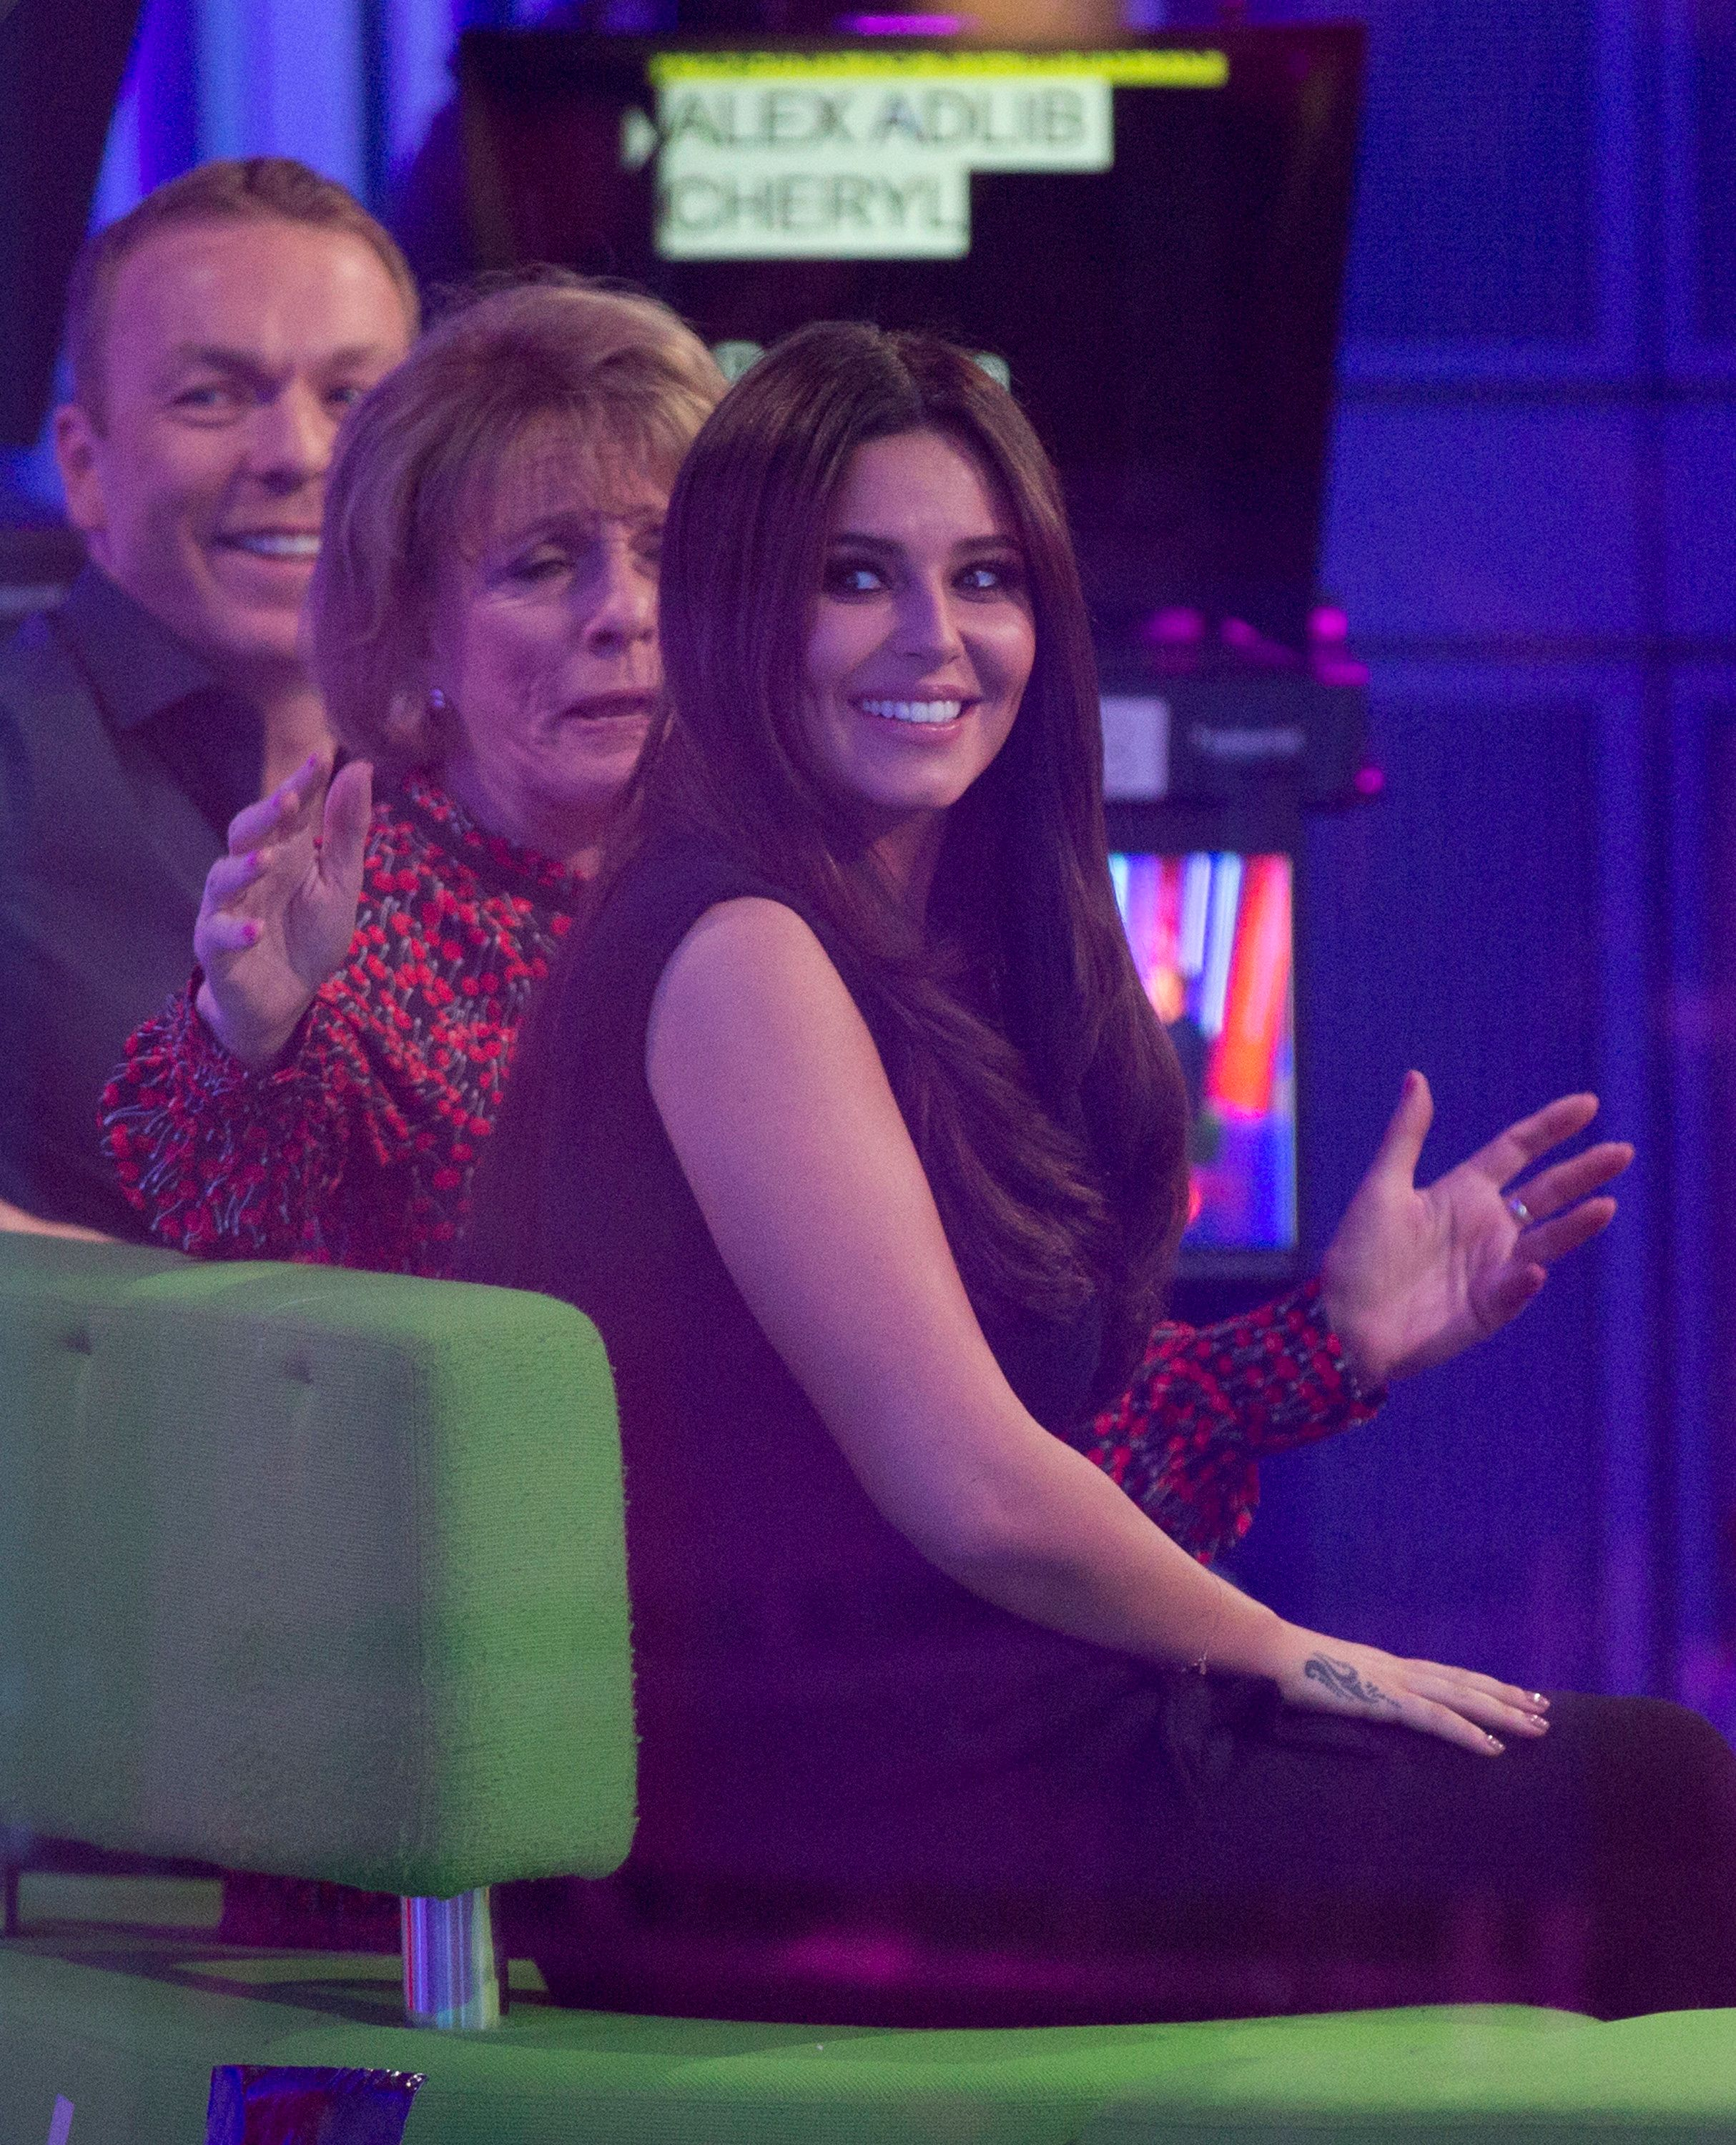 Cheryl Dishes Out Baby Advice On 'The One Show' As Pregnancy Rumours